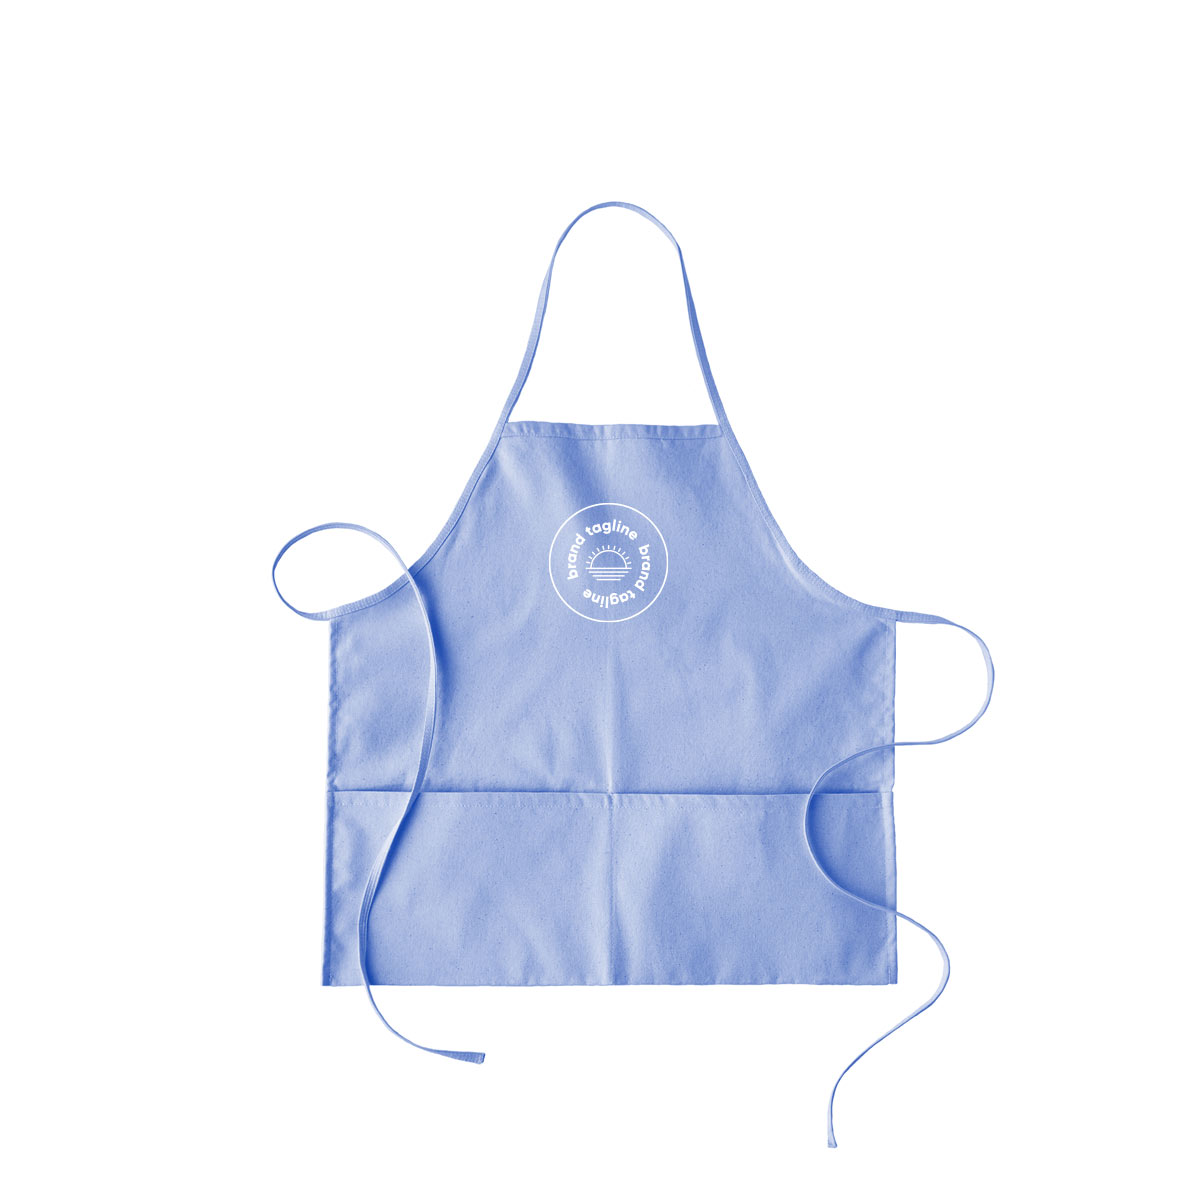 318310 al dente apron one color one location imprint